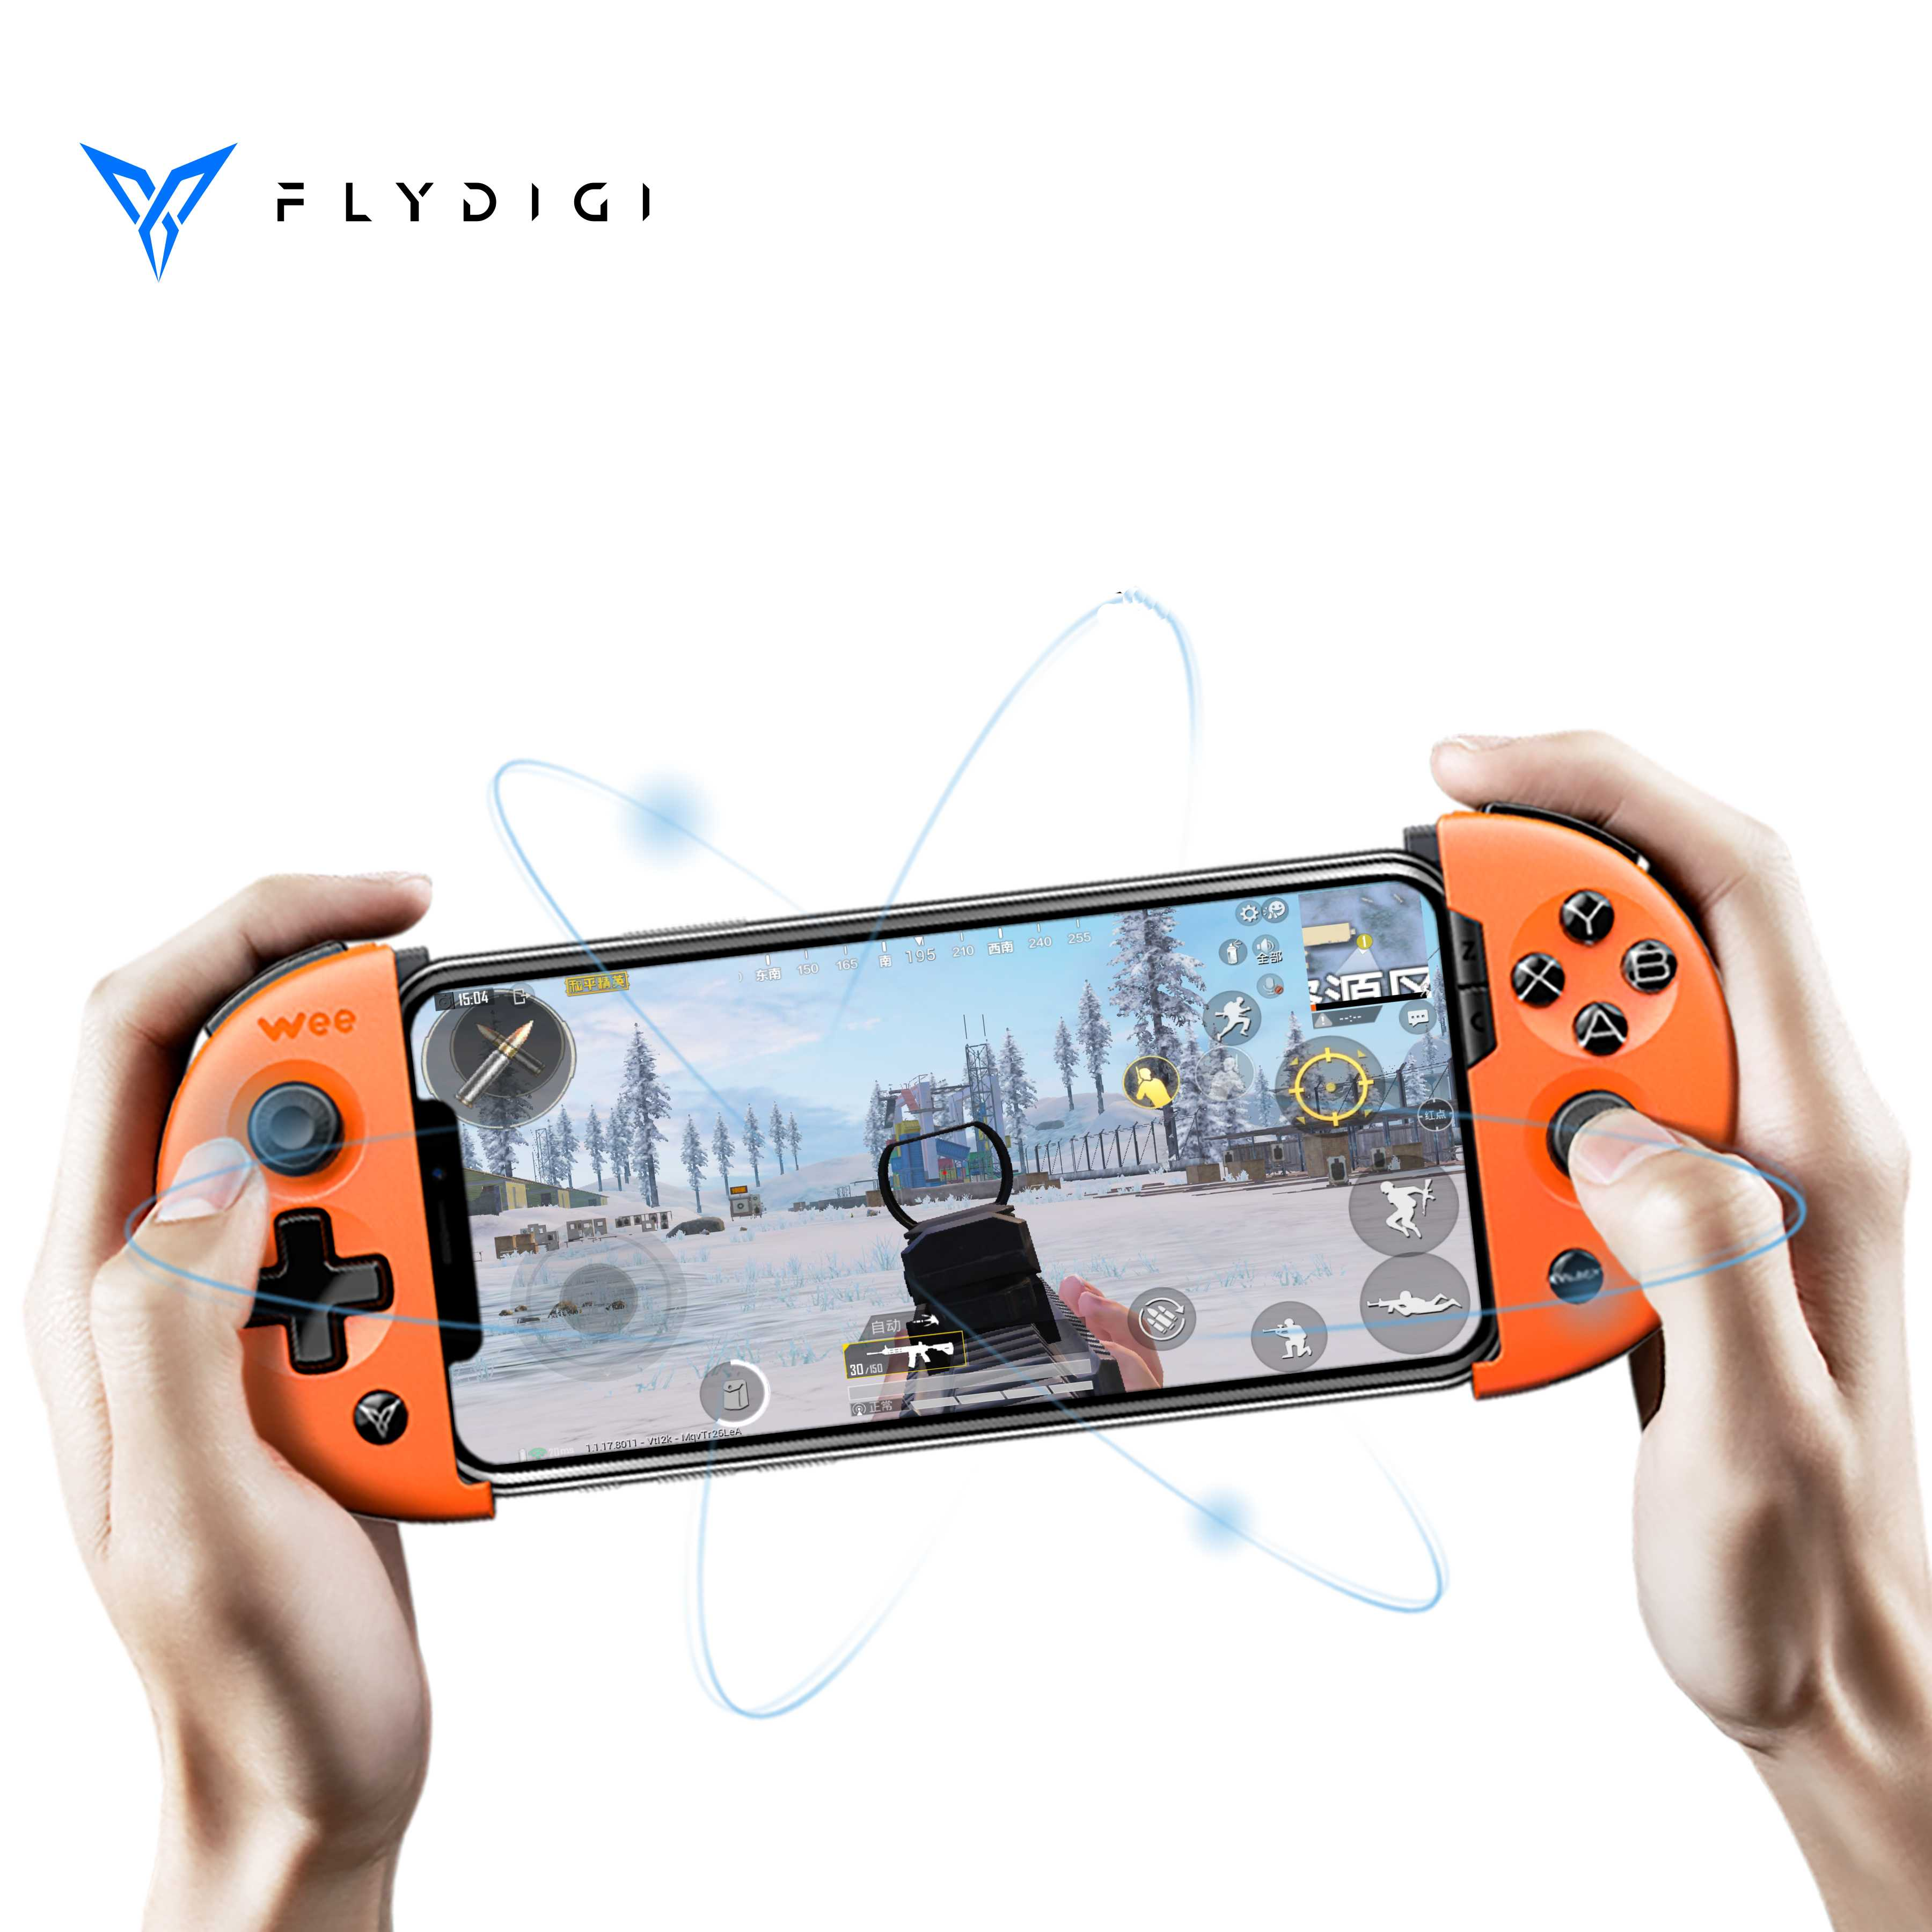 Flydigi wee 2T with mouse keyboard conveter Pubg controller mobile game Motion Sensing gamepad(China)